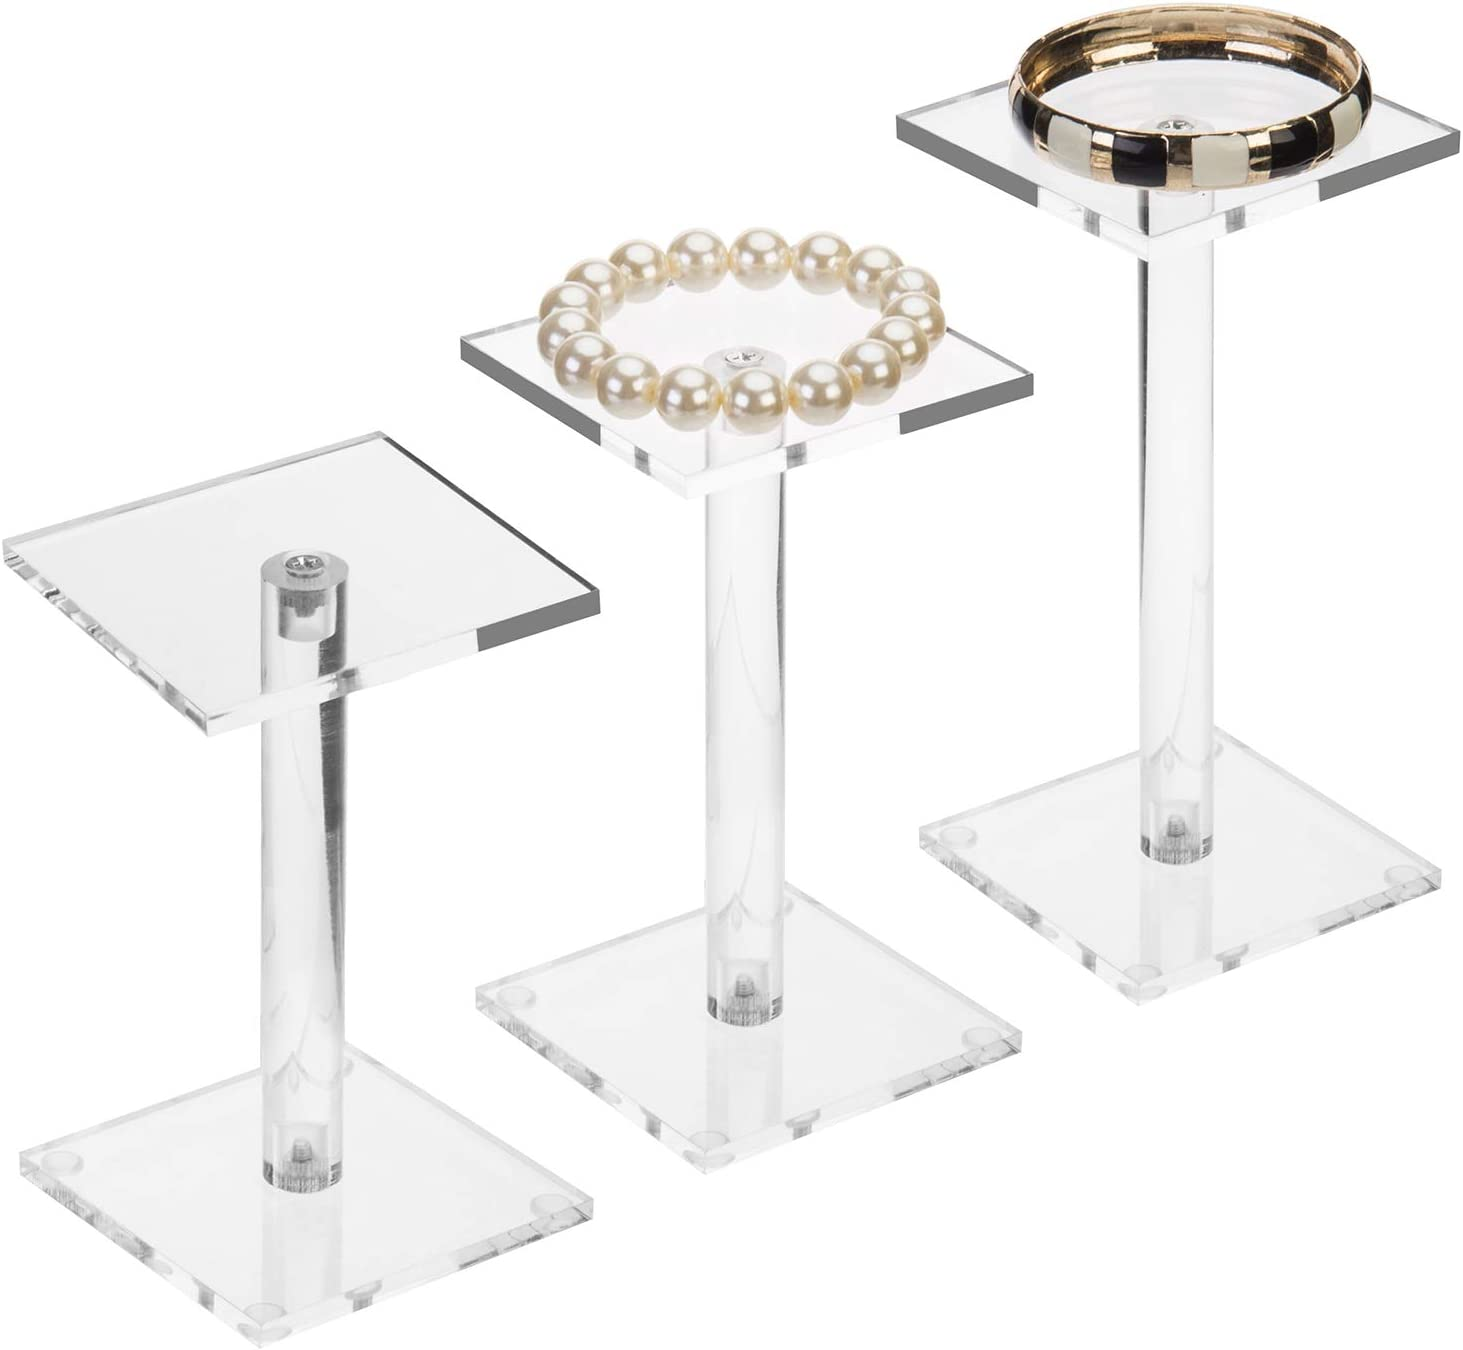 MyGift Premium Clear Acrylic Square Pedestal Display Riser Stands, Set of 3